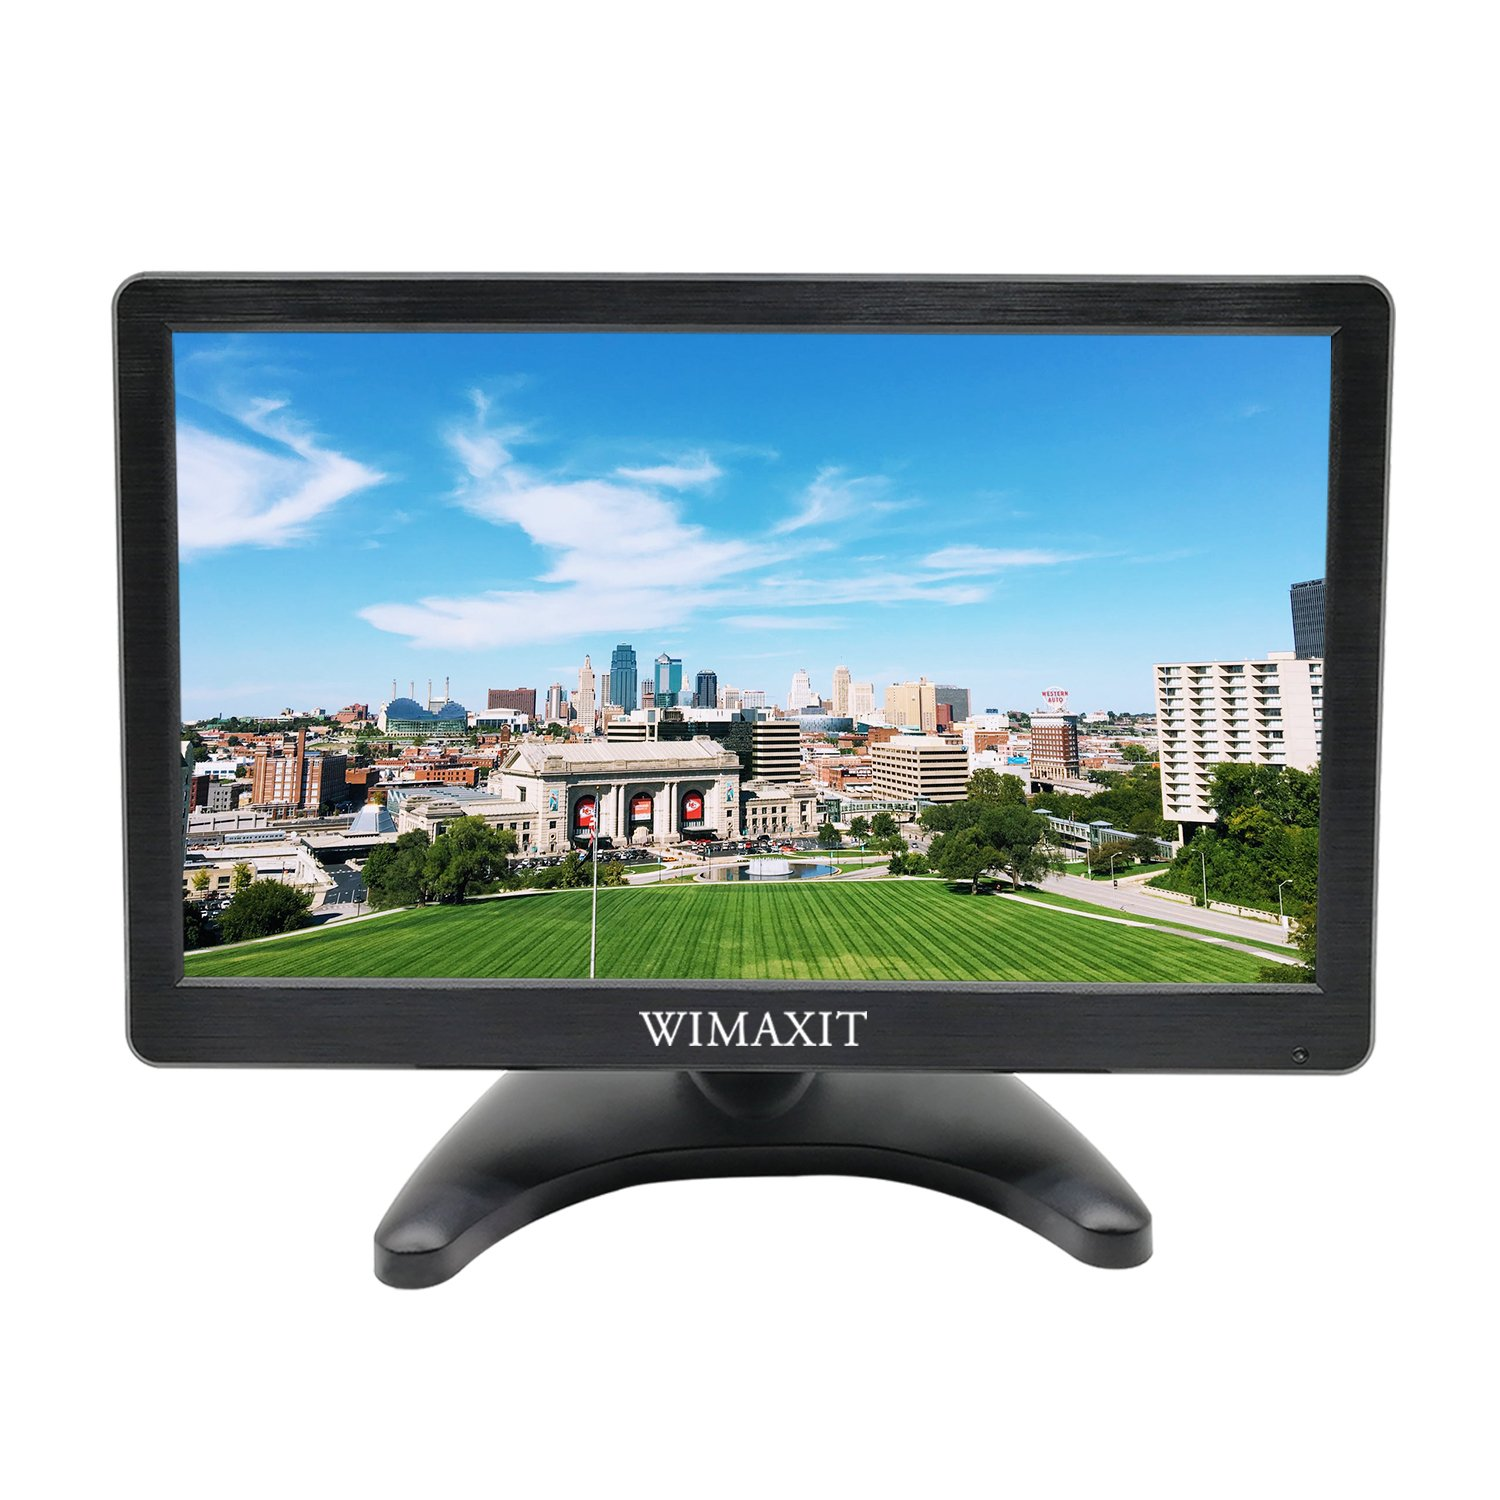 WIMAXIT 12 Inch IPS FHD 1920x1080 HDMI Monitor HDMI VGA BNC AV Input 5V USB Output for PC Computer Camera DVD Security CCTV DVR Home Office Surveillance by WIMAXIT